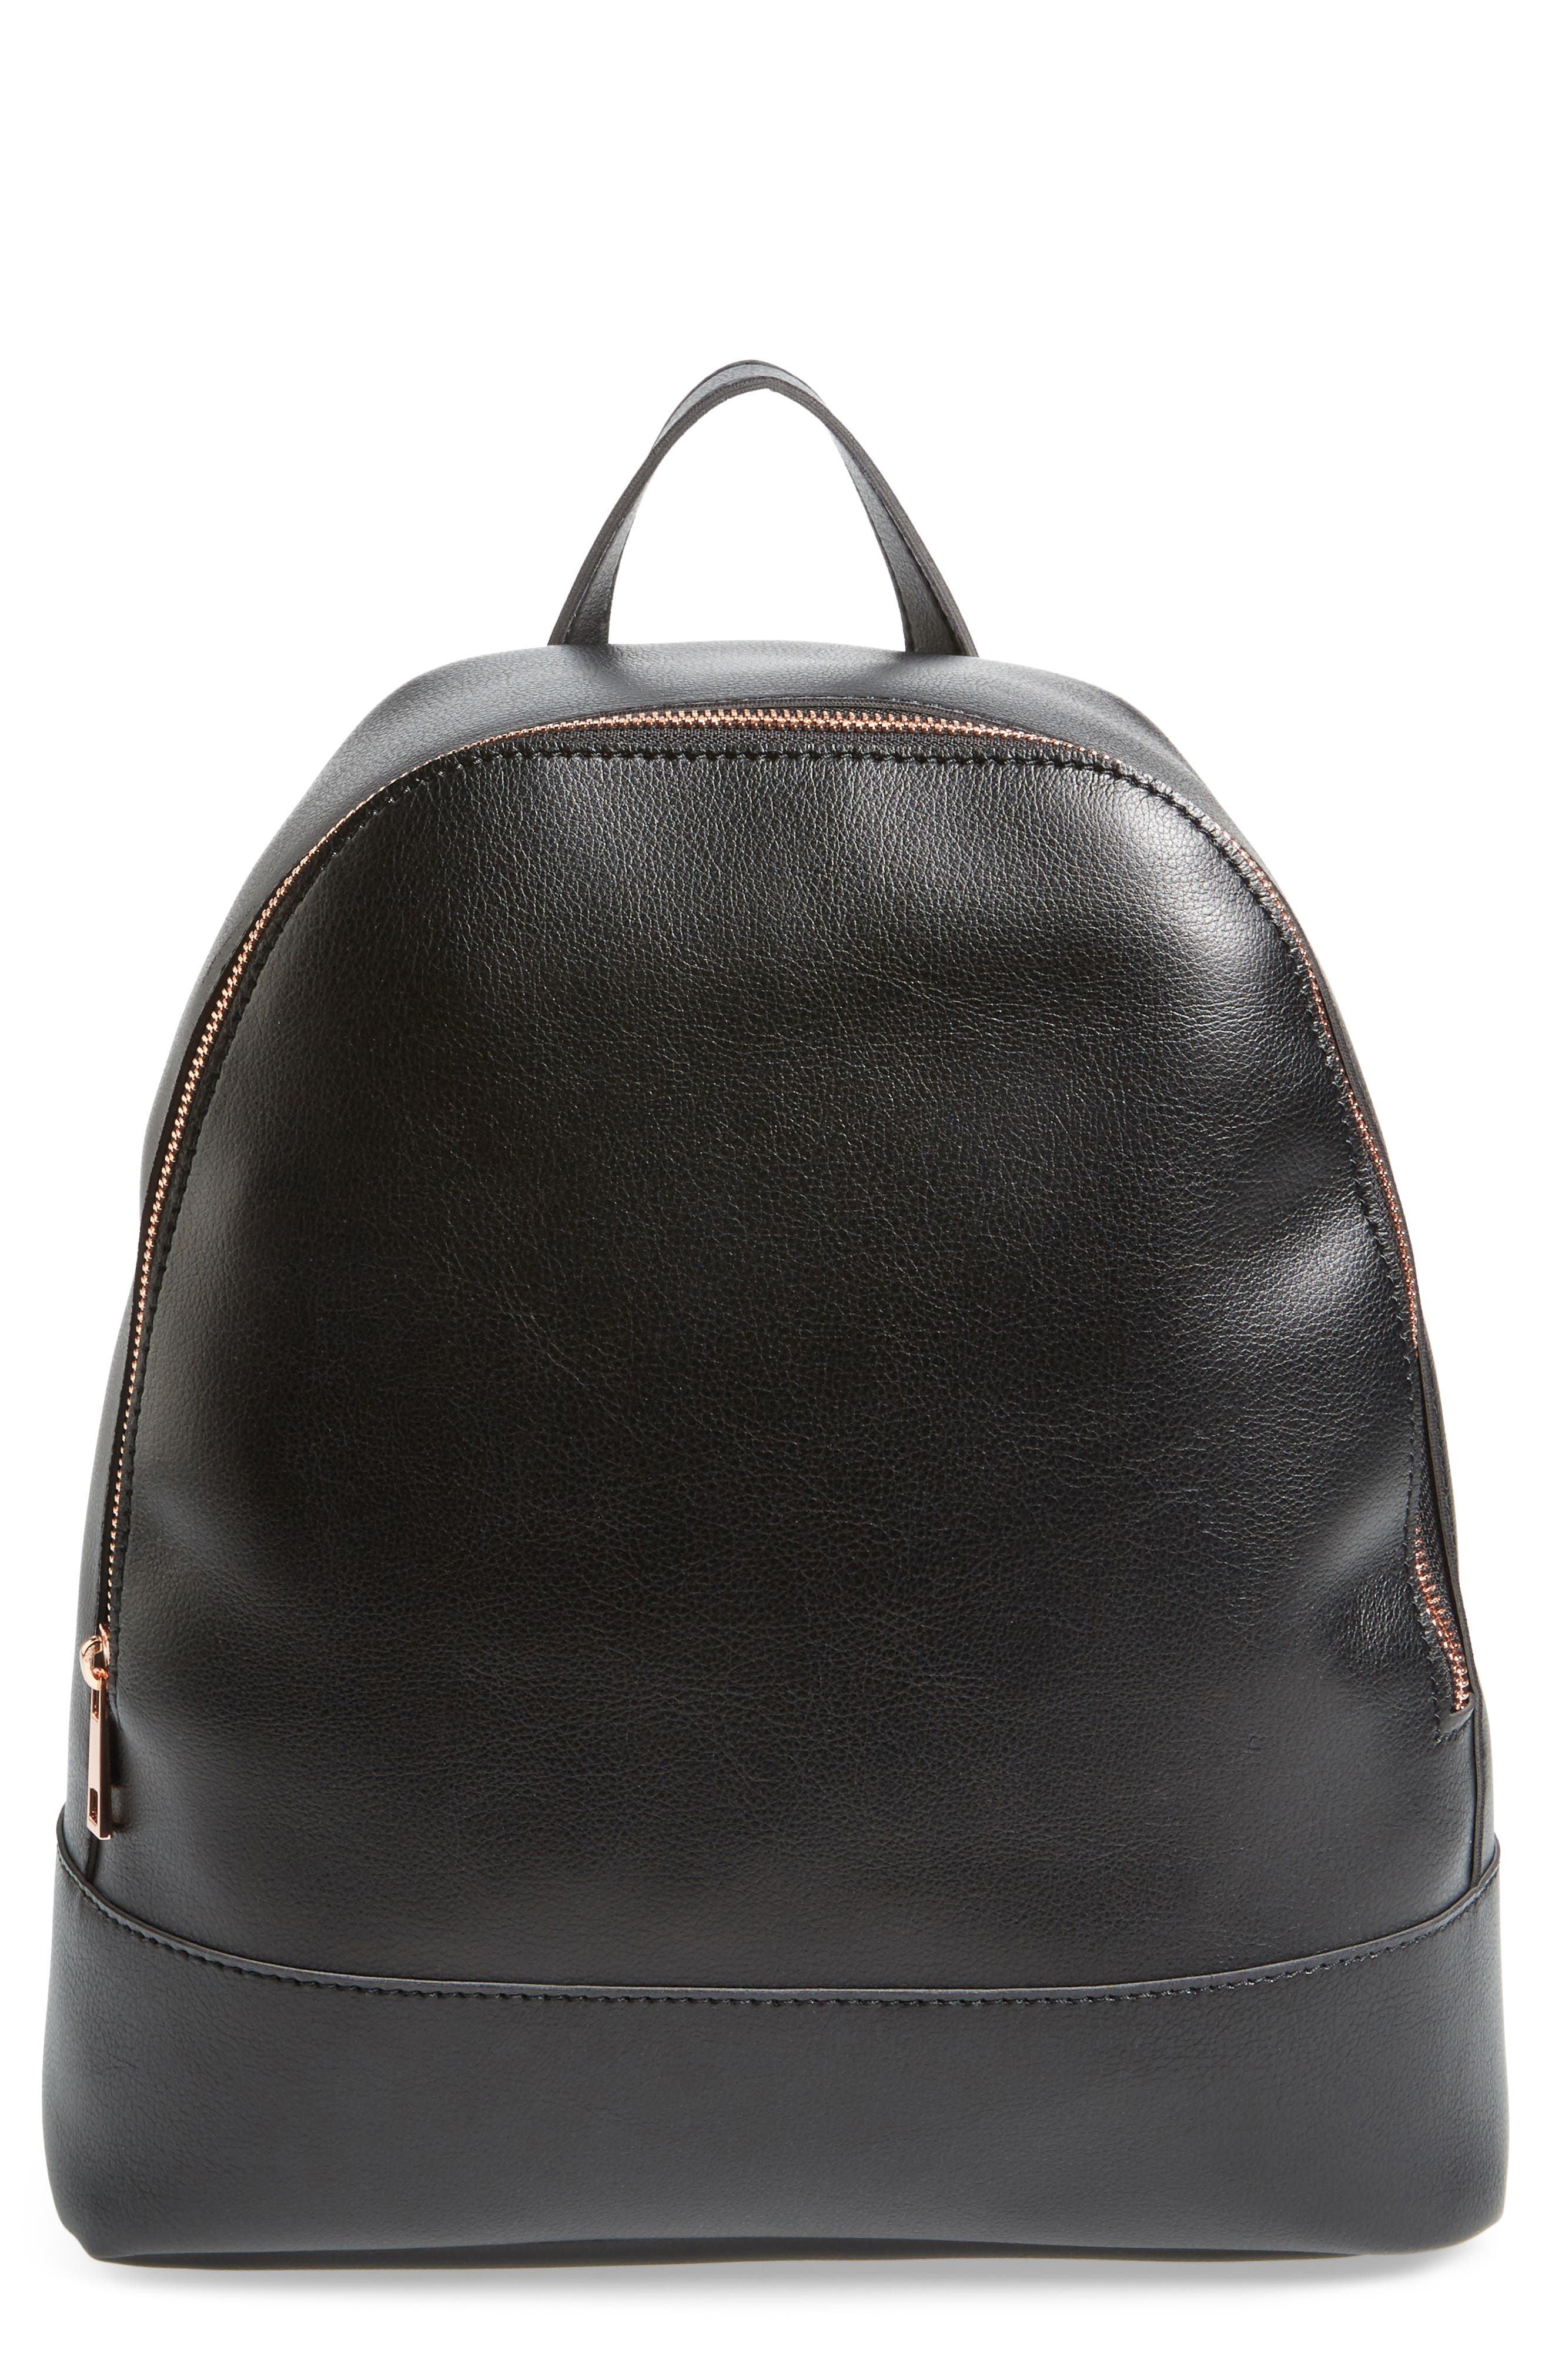 Chester Faux Leather Backpack,                         Main,                         color, 001